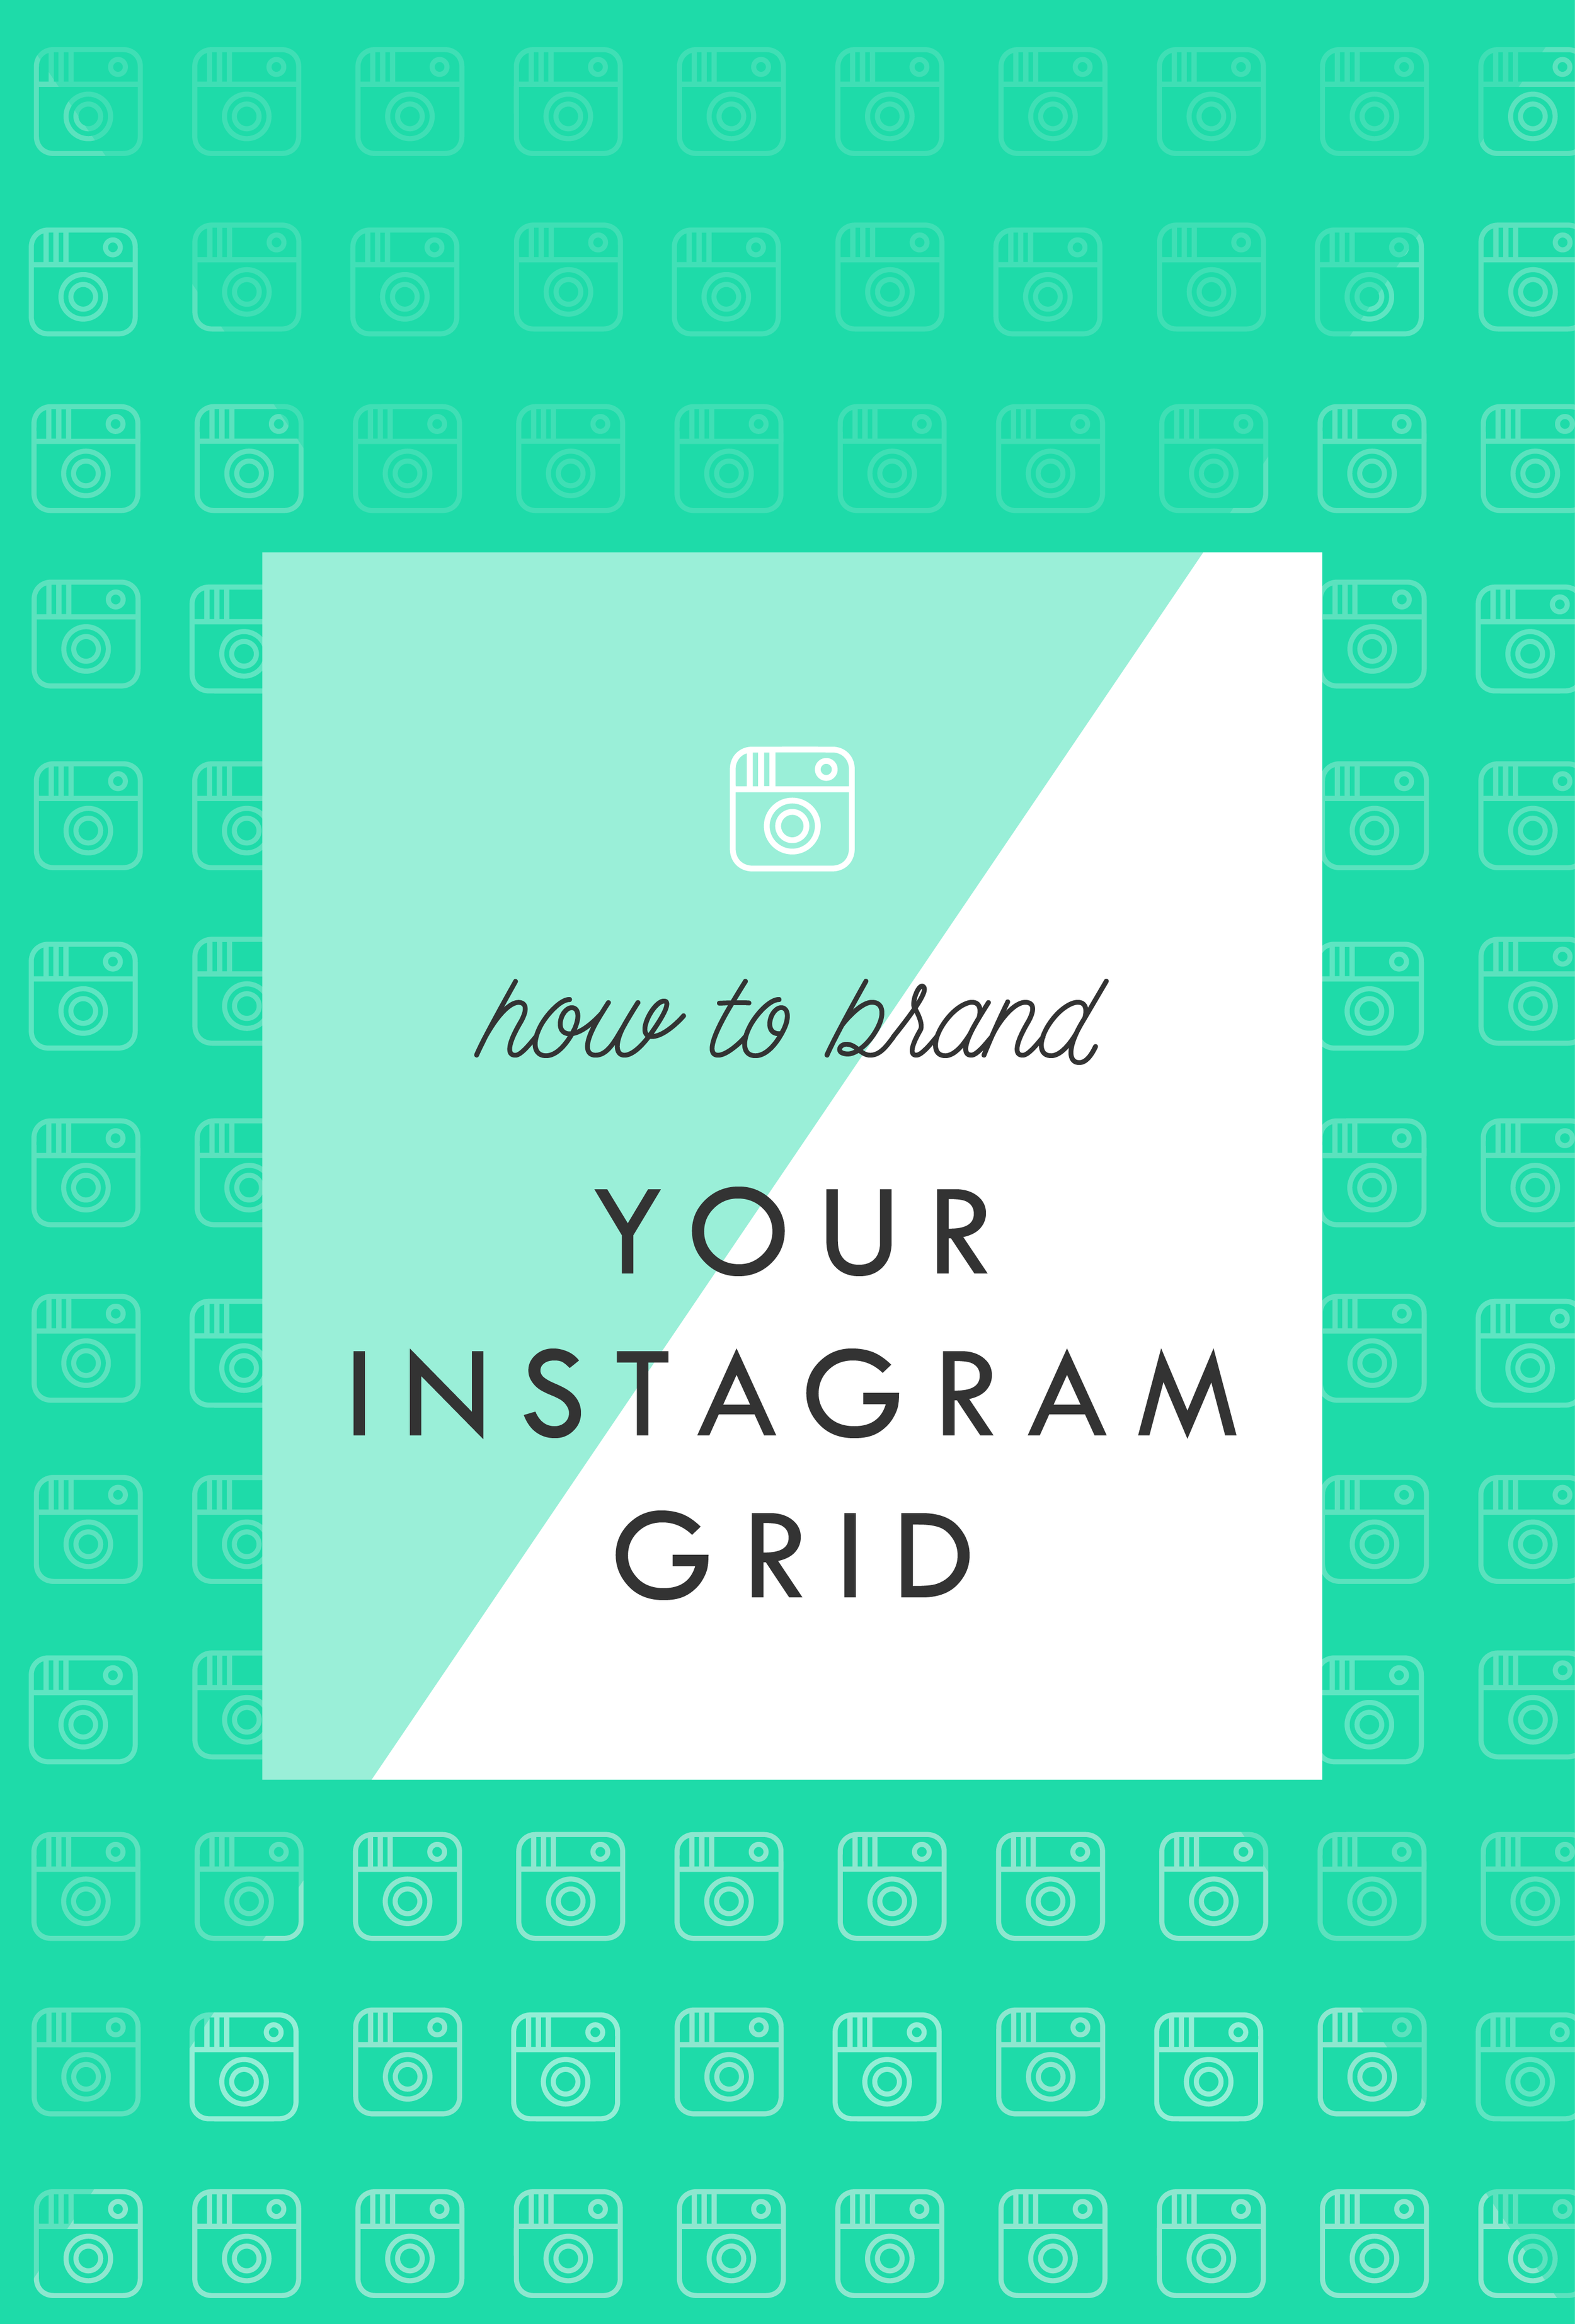 How-to-Brand-Your-Instgram-Grid-01.png